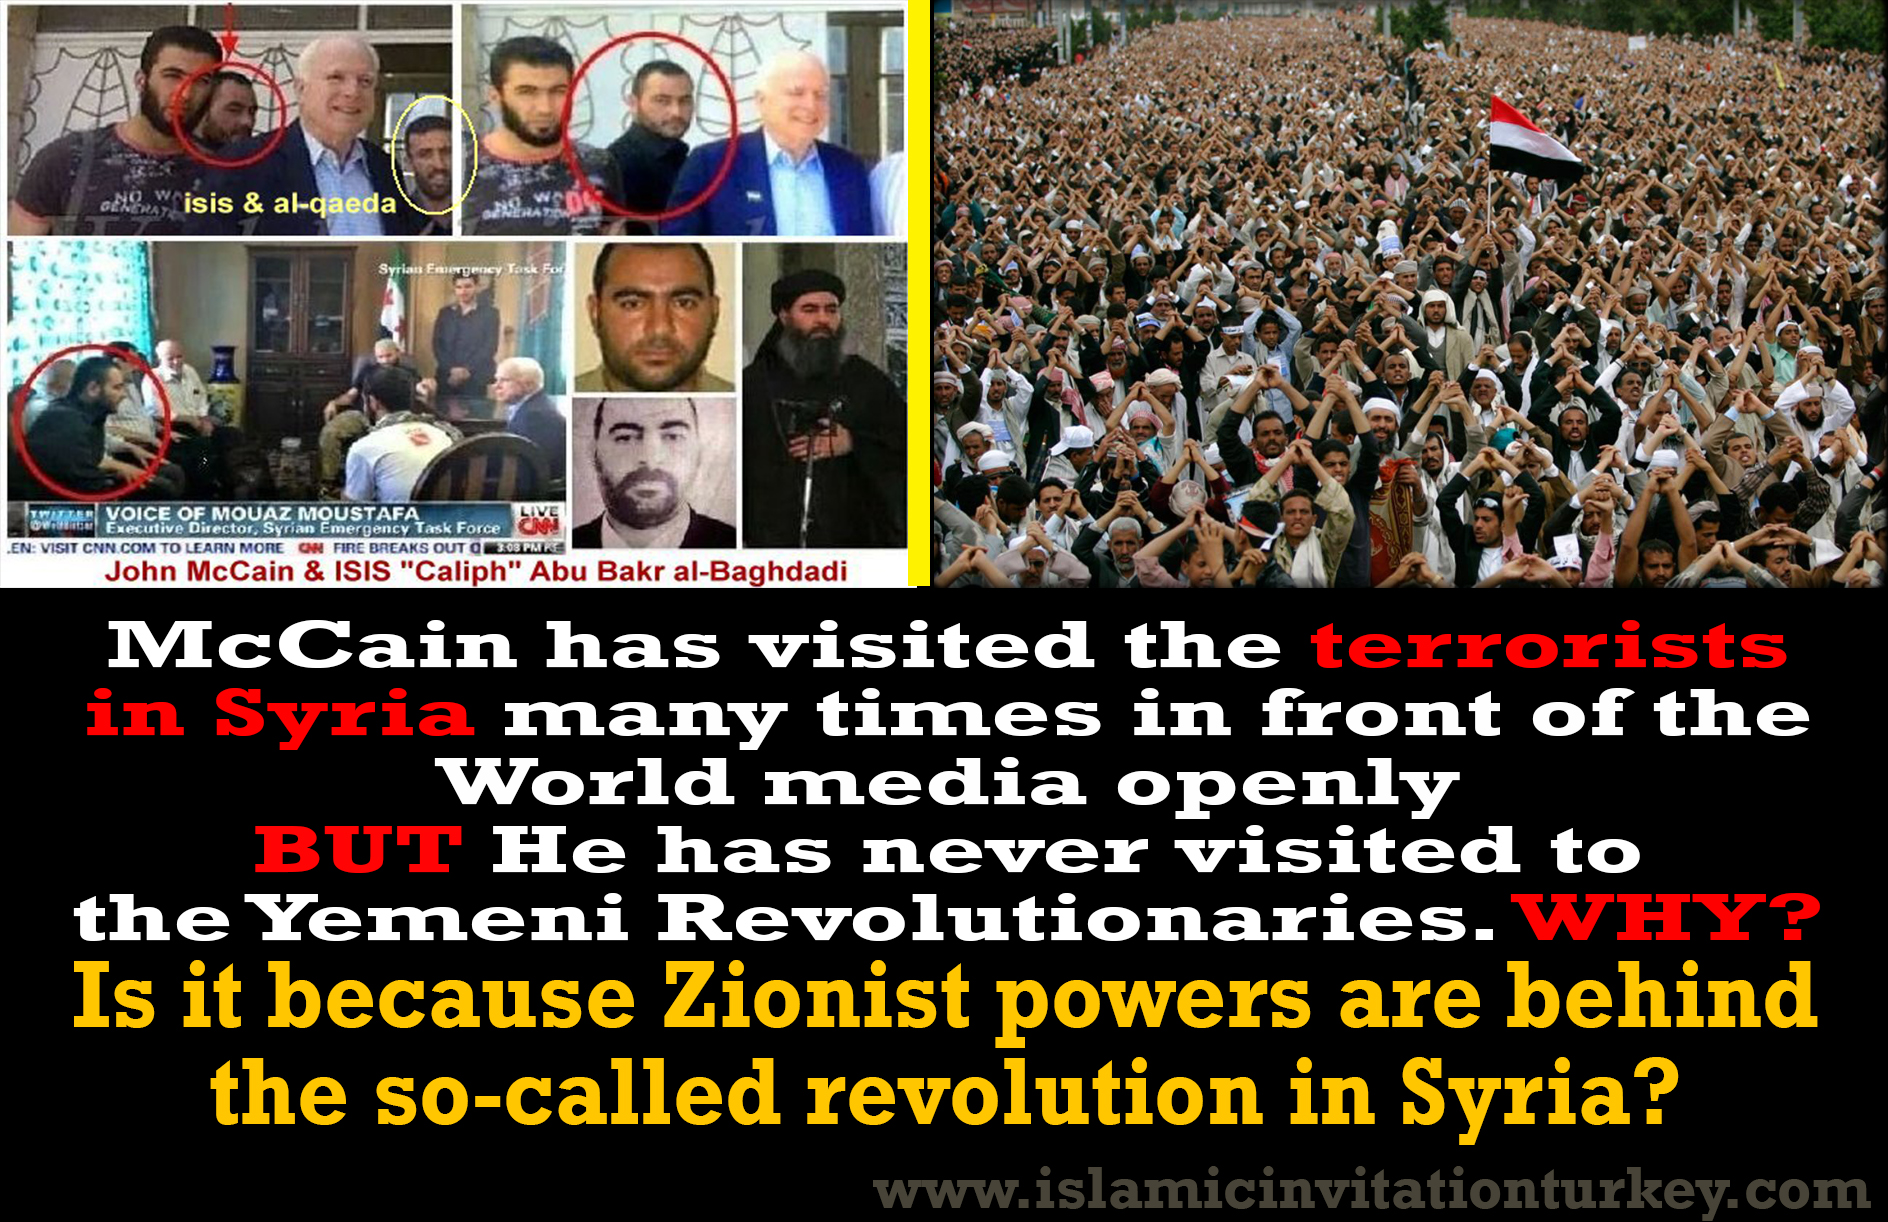 Photo of McCain visited terrorists in Syria many times but he hasn't visited Yemeni Revolutionaries. Why?